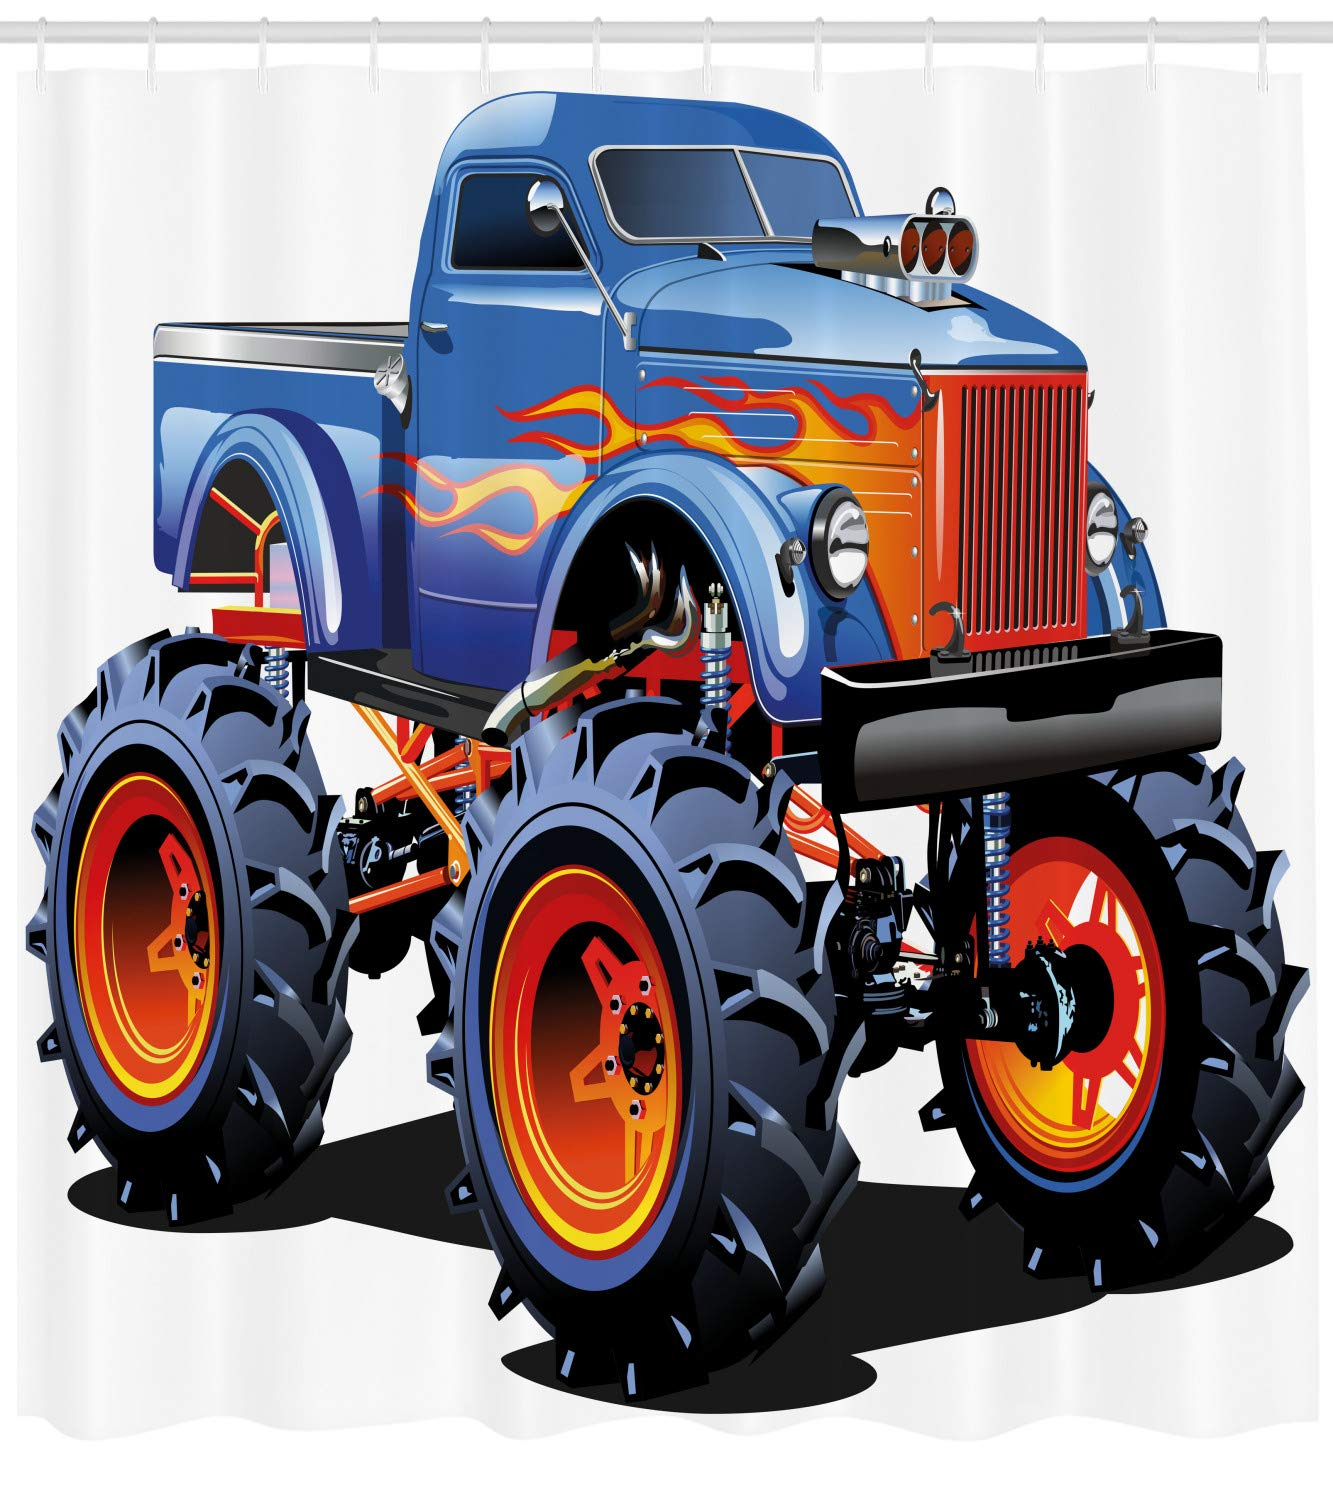 Man Cave cortina de ducha por lunarable, Cartoon Monster Truck con grandes neumáticos todoterreno pesado grande Tractor ruedas Turbo, cuarto de baño Set de ...